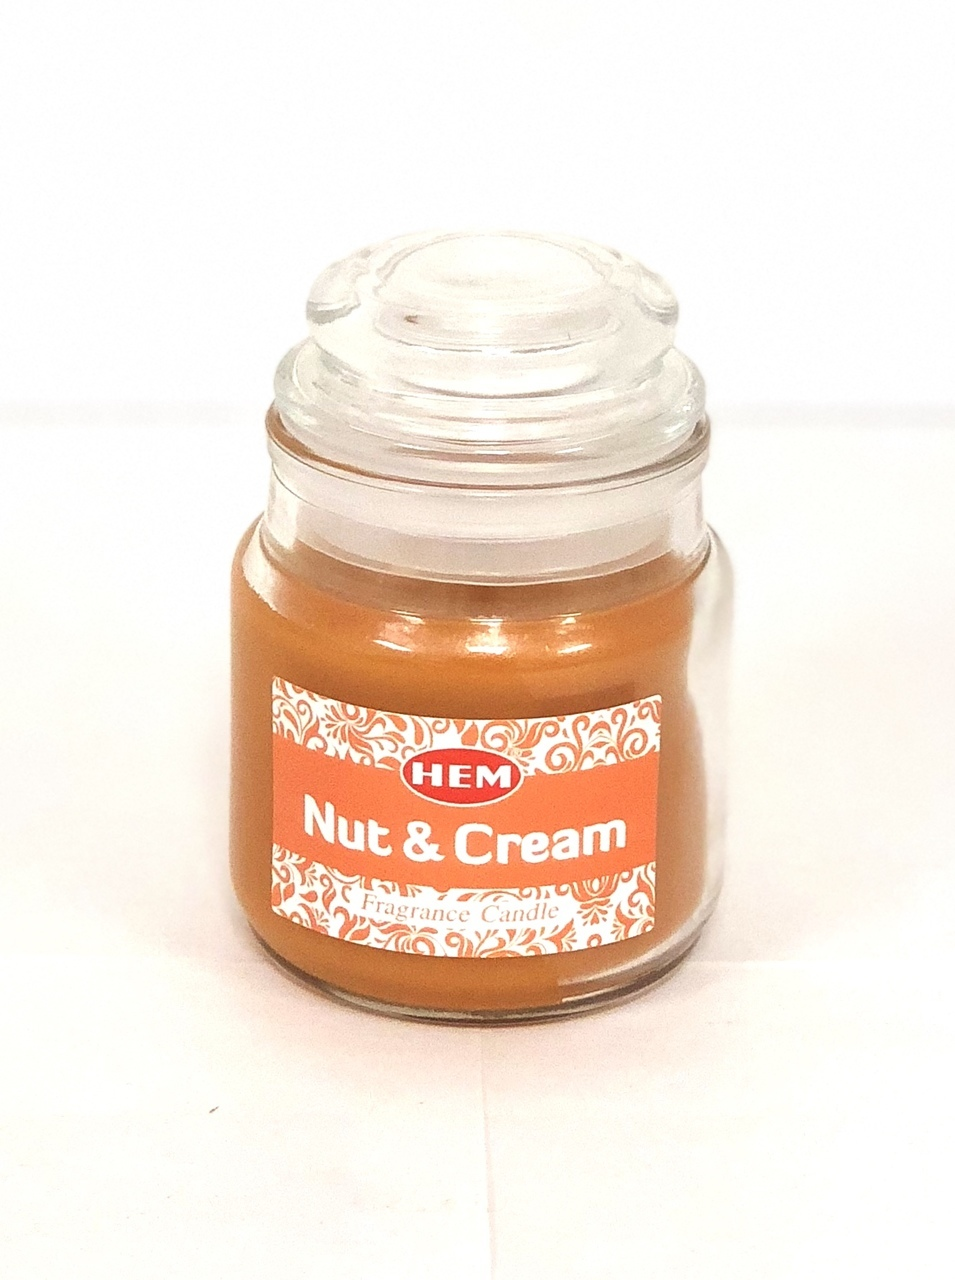 Hem Nut & Cream Candle $8.99